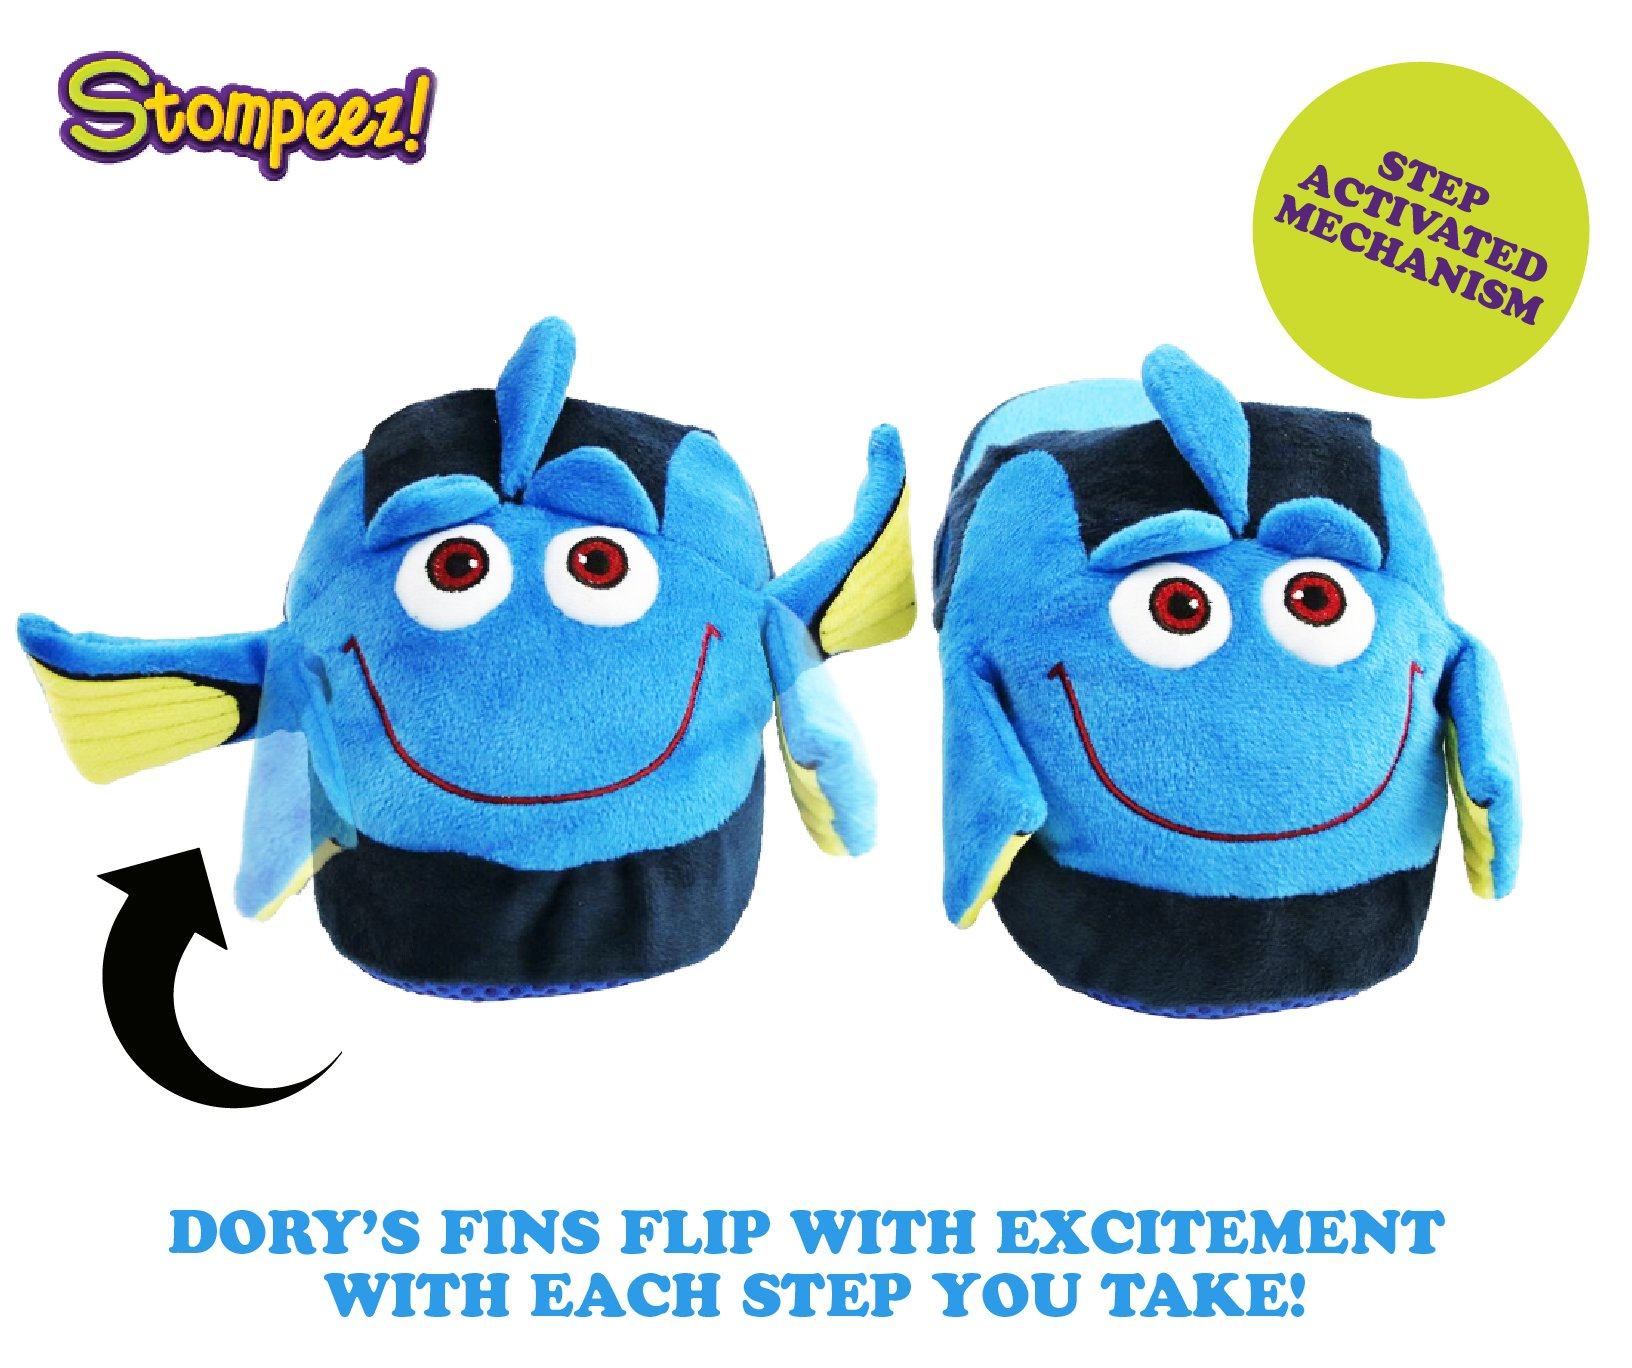 Stompeez Animated Dory Plush Slippers - Ultra Soft and Fuzzy - Fins Flap and Flutter as You Walk - Large by Stompeez (Image #2)